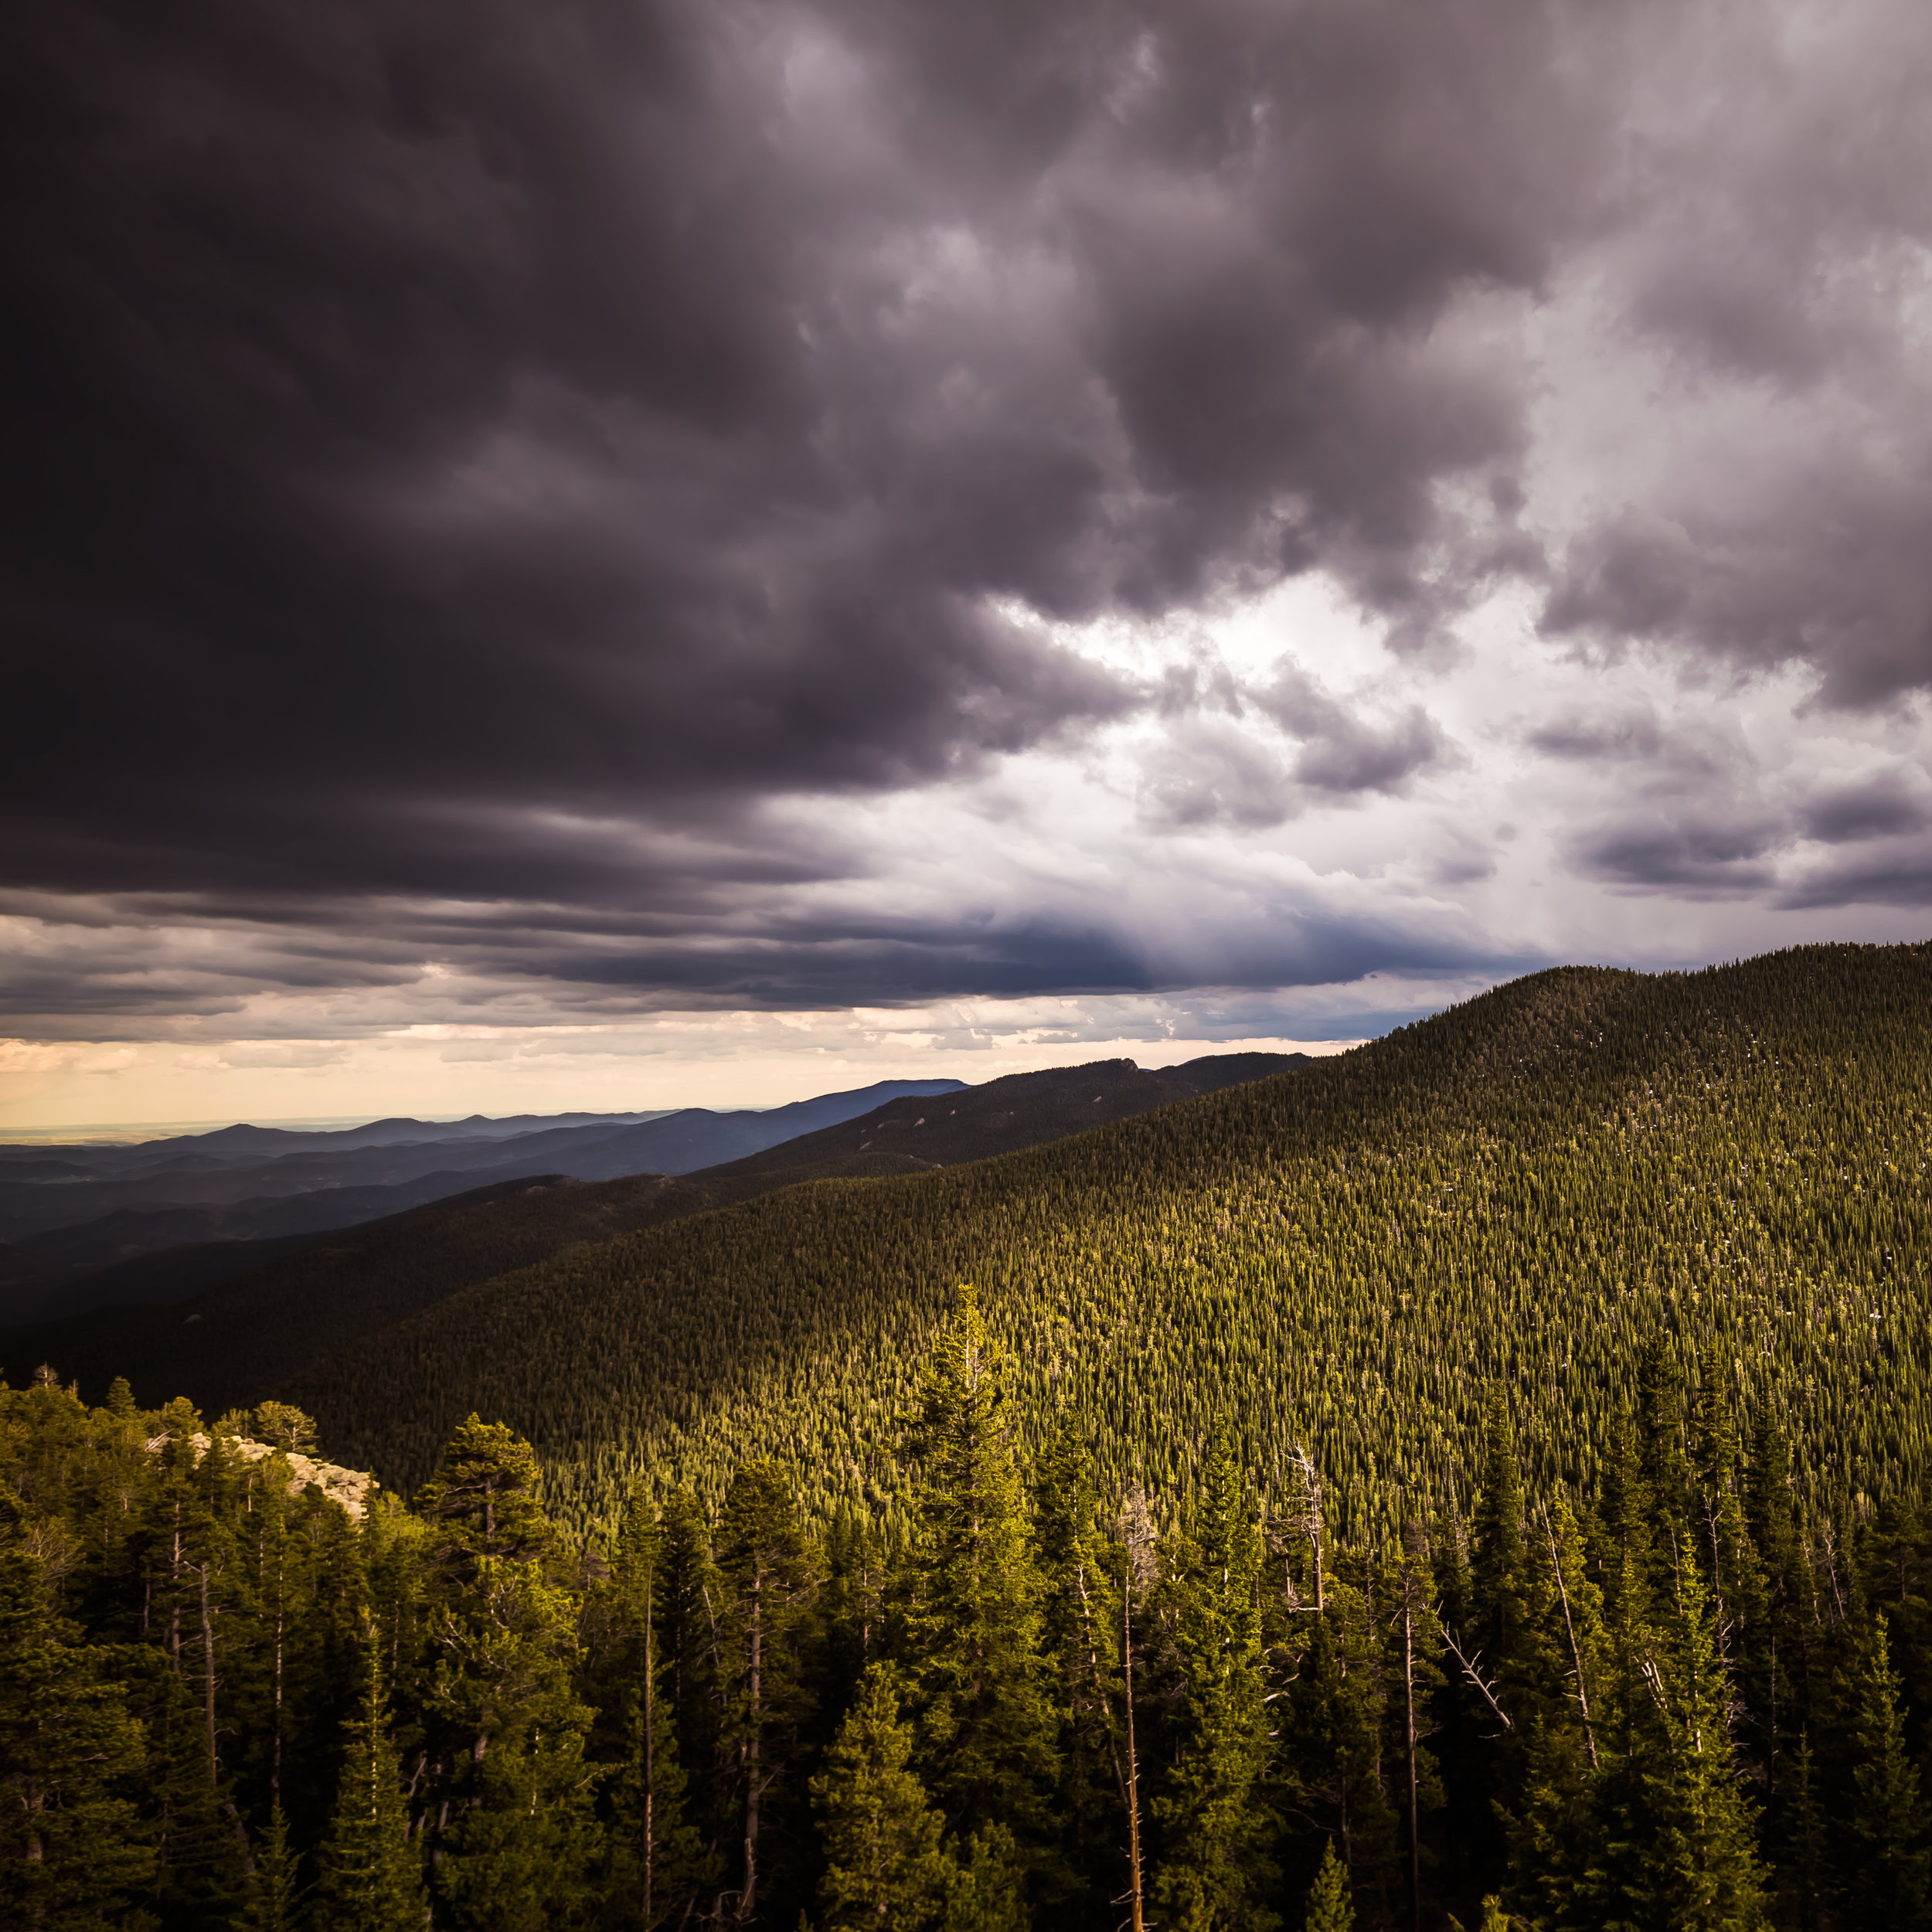 Light - 12x12 print in a 16x16 mat  Taken on June 13, 2015 near Mt. Evans in Colorado.  This was taken just before a crazy lightning storm.  First shown at the Denver Art Society -November 2016 First Friday.